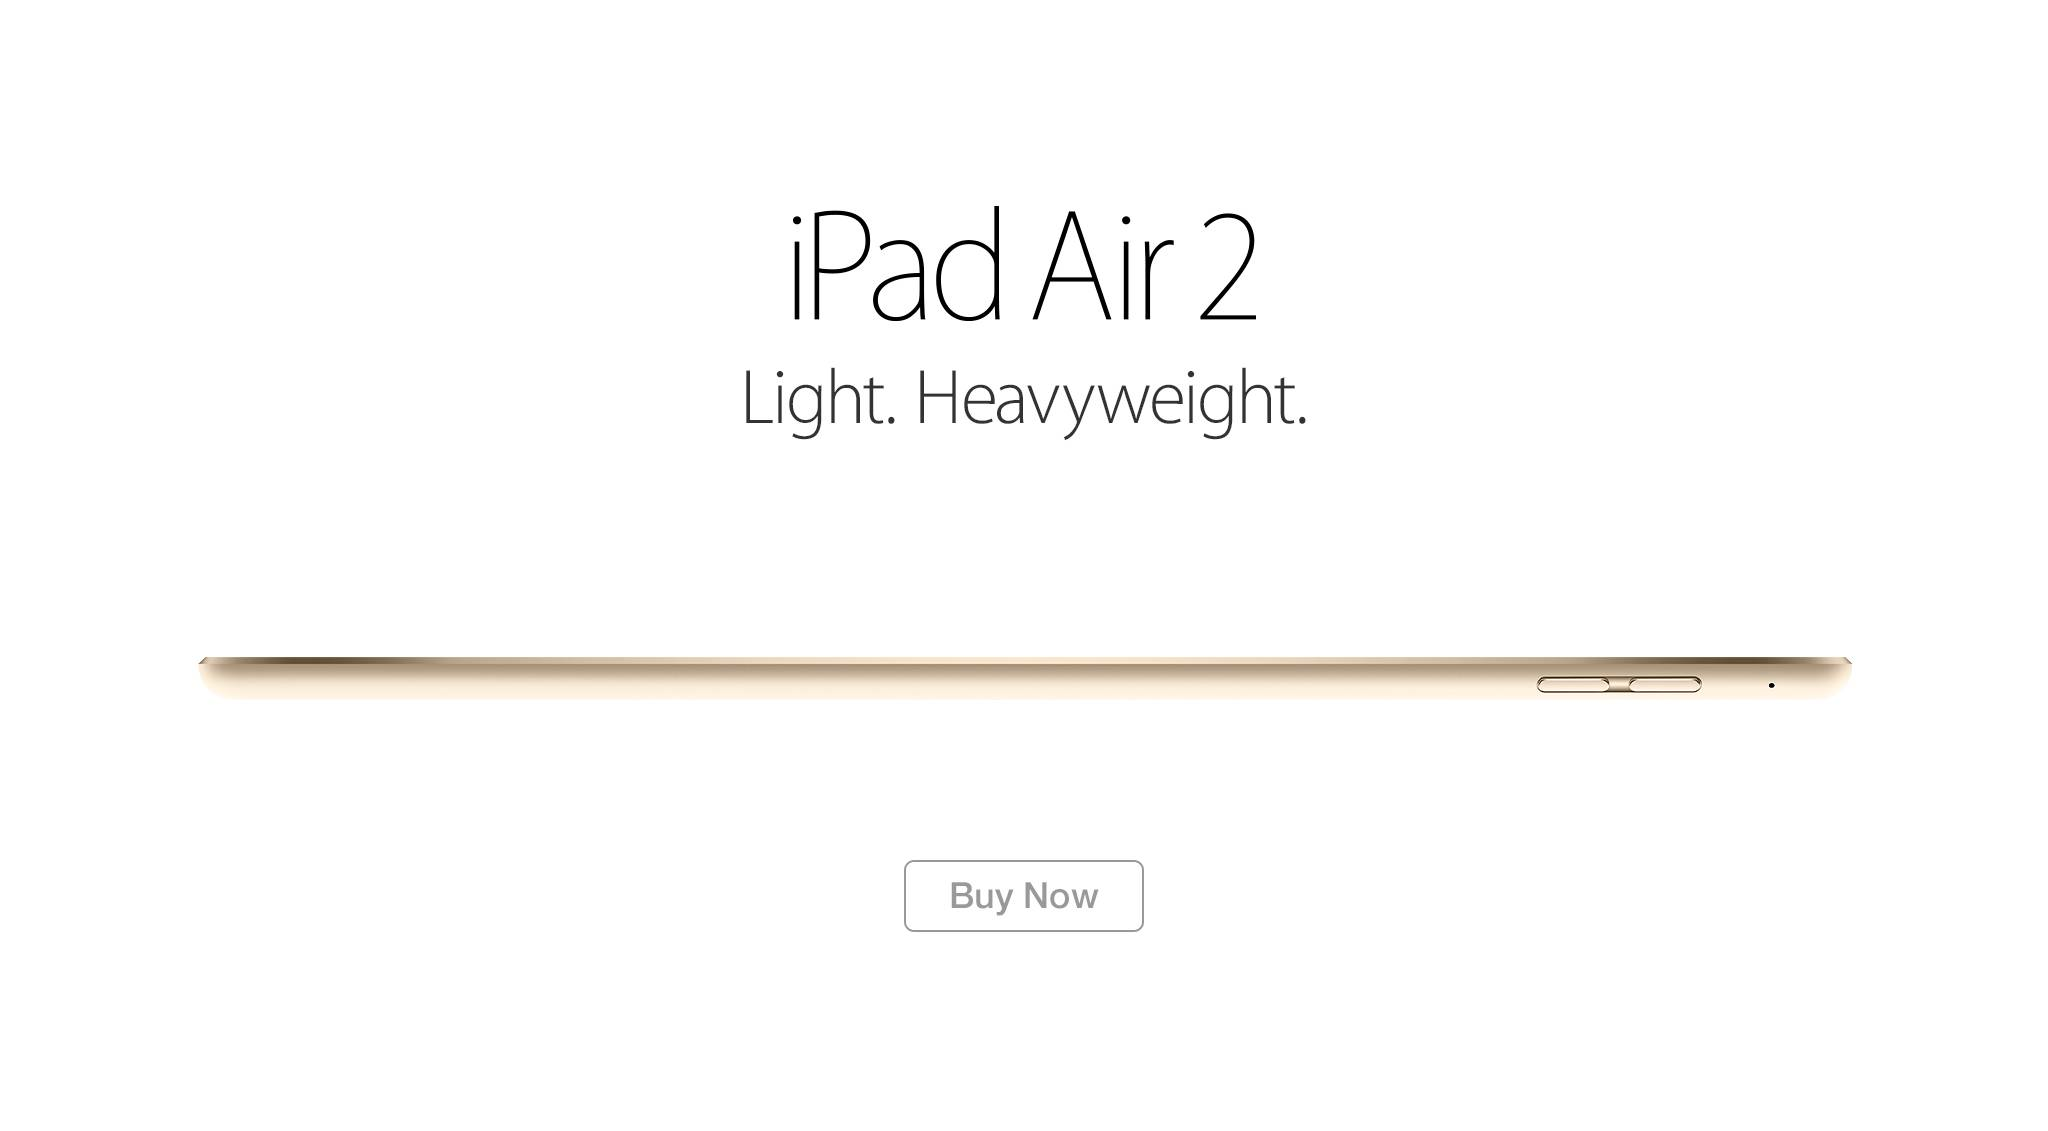 ipad air 2 learn more